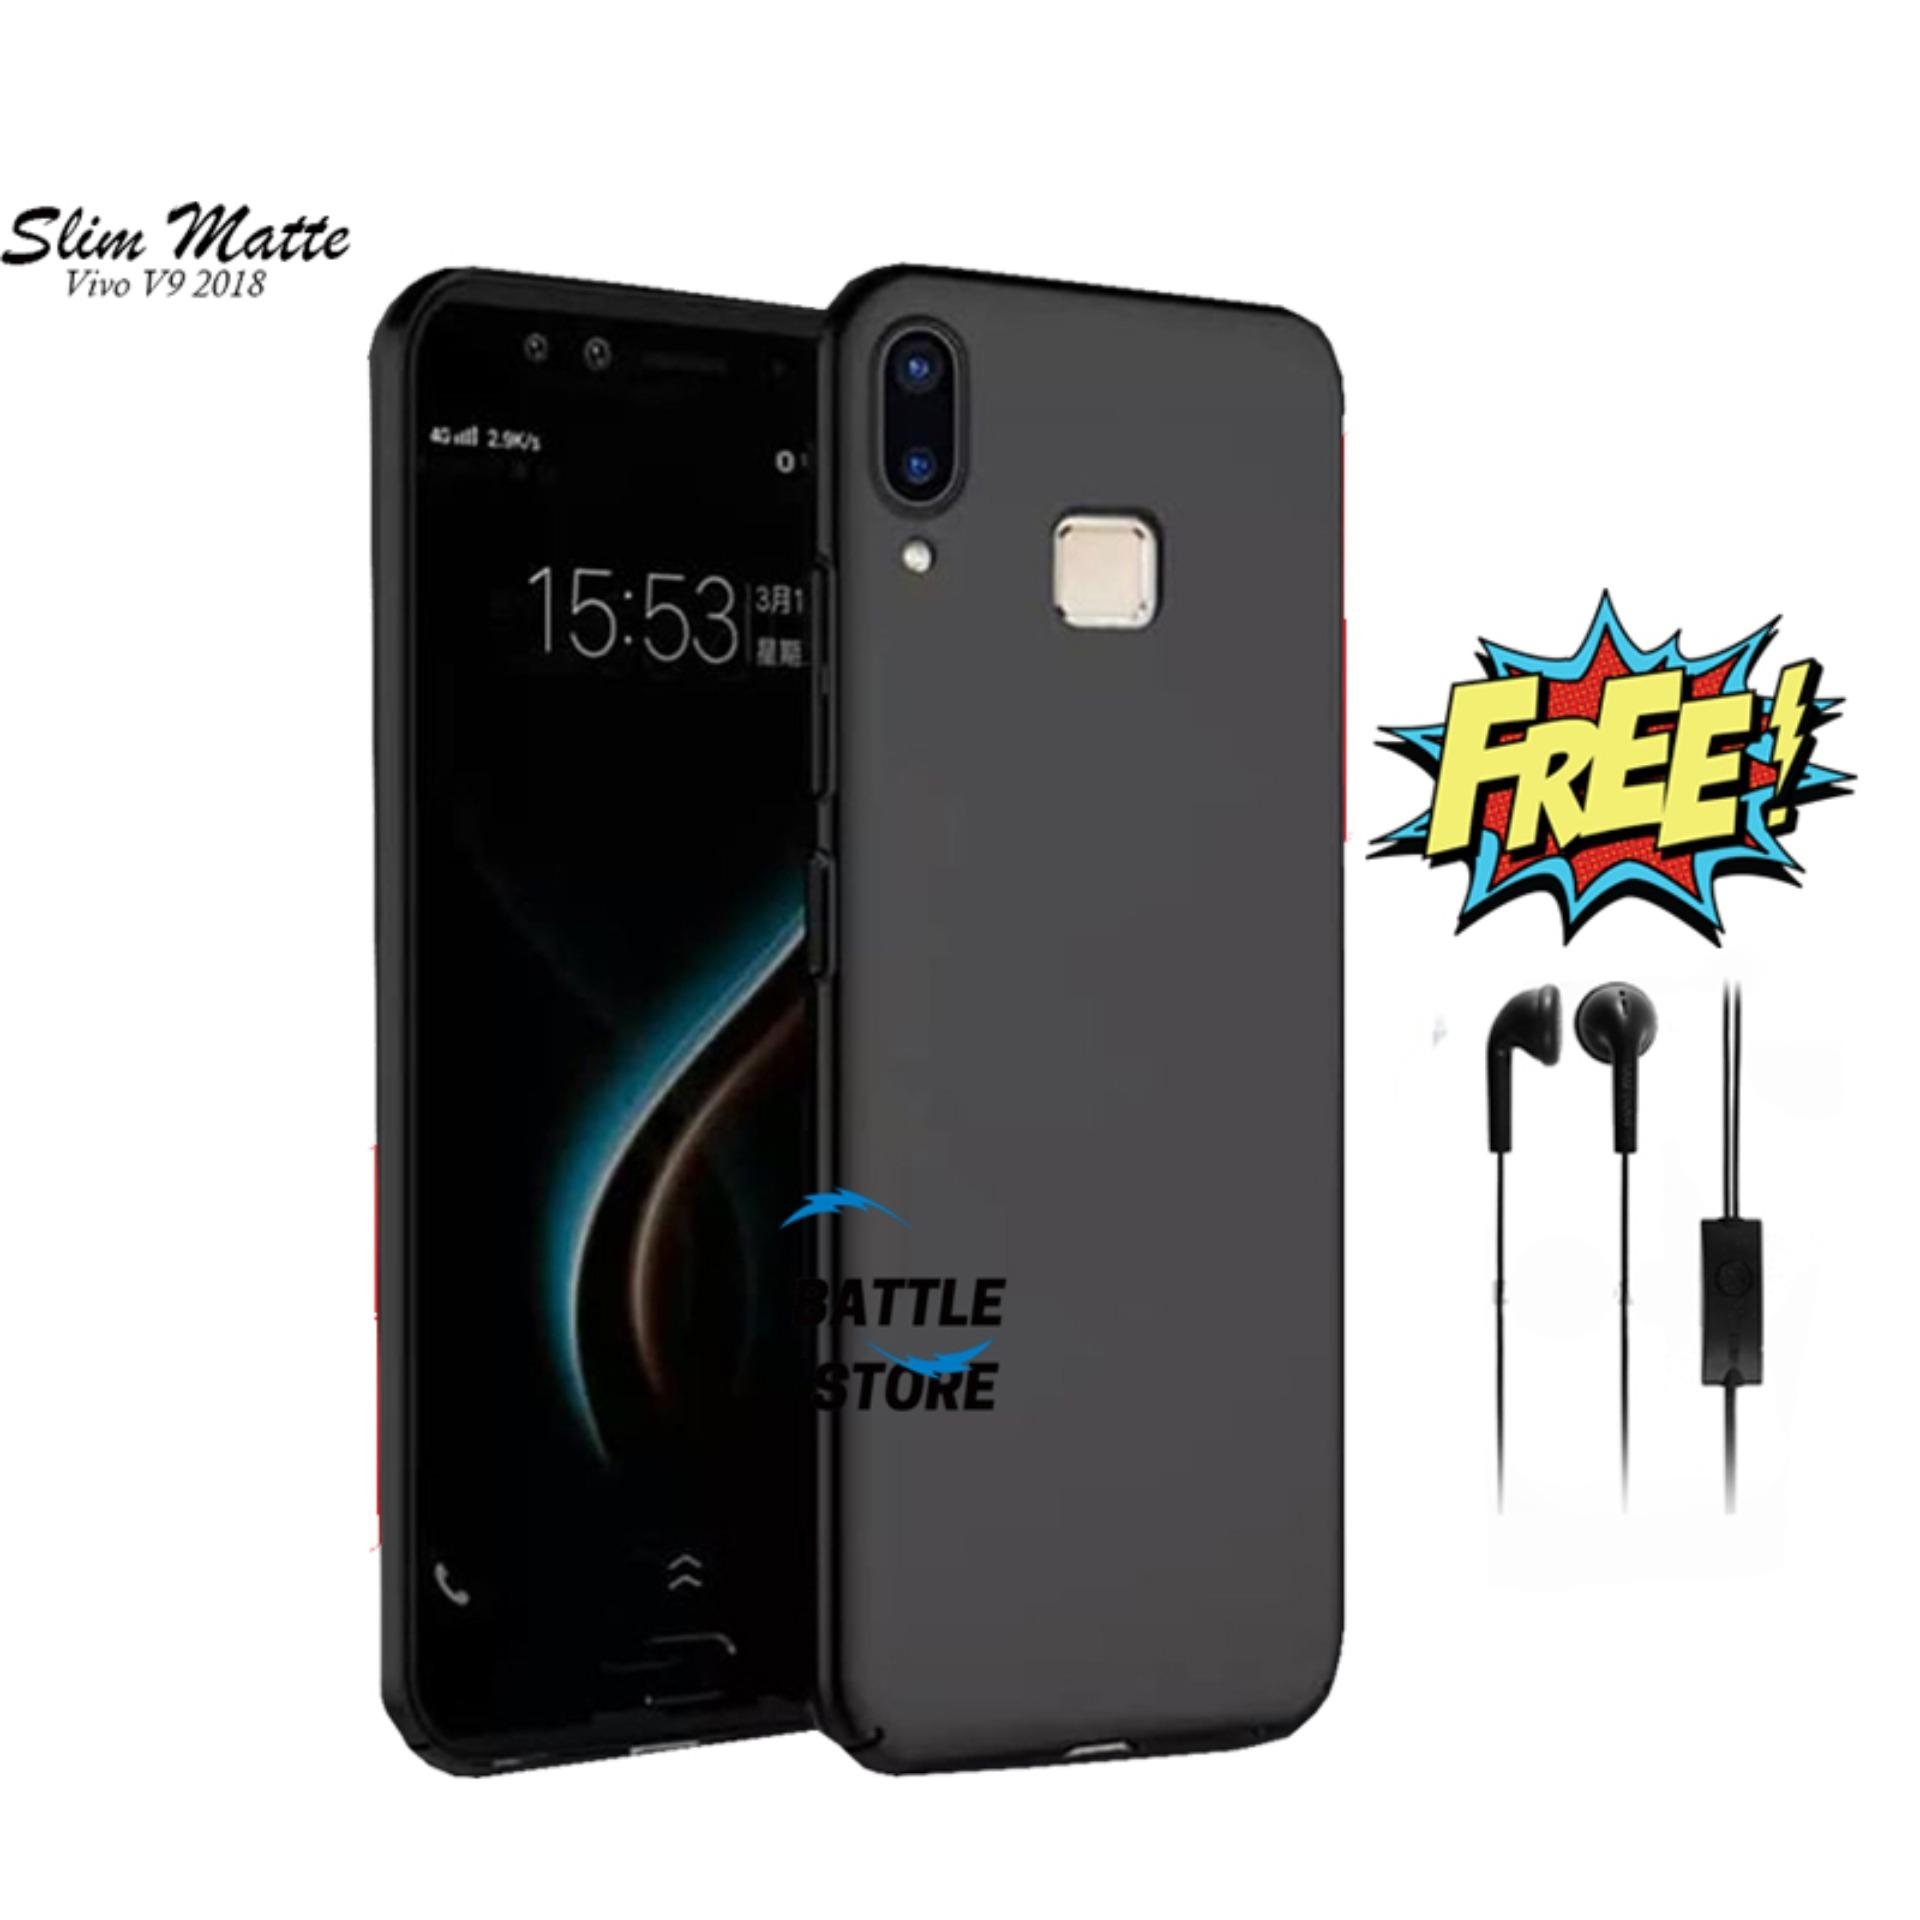 Case Slim Black Matte Vivo V9 V9 Youth Baby Skin Softcase Ultra Thin Jelly Silikon